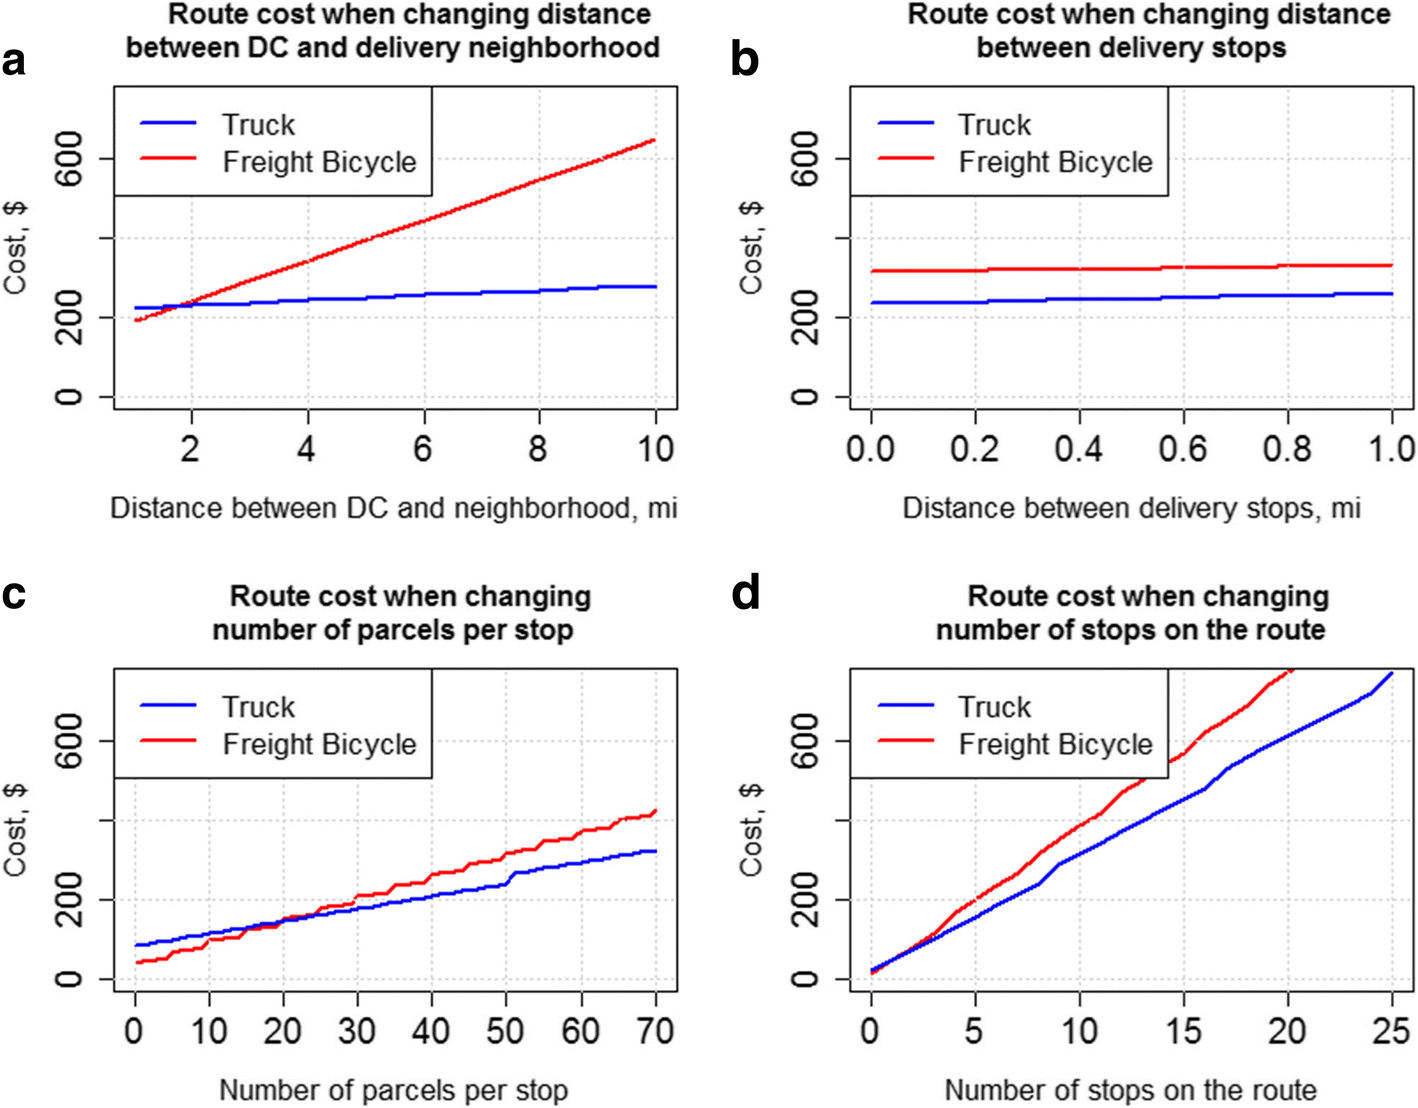 Measuring delivery route cost trade-offs between electric-assist